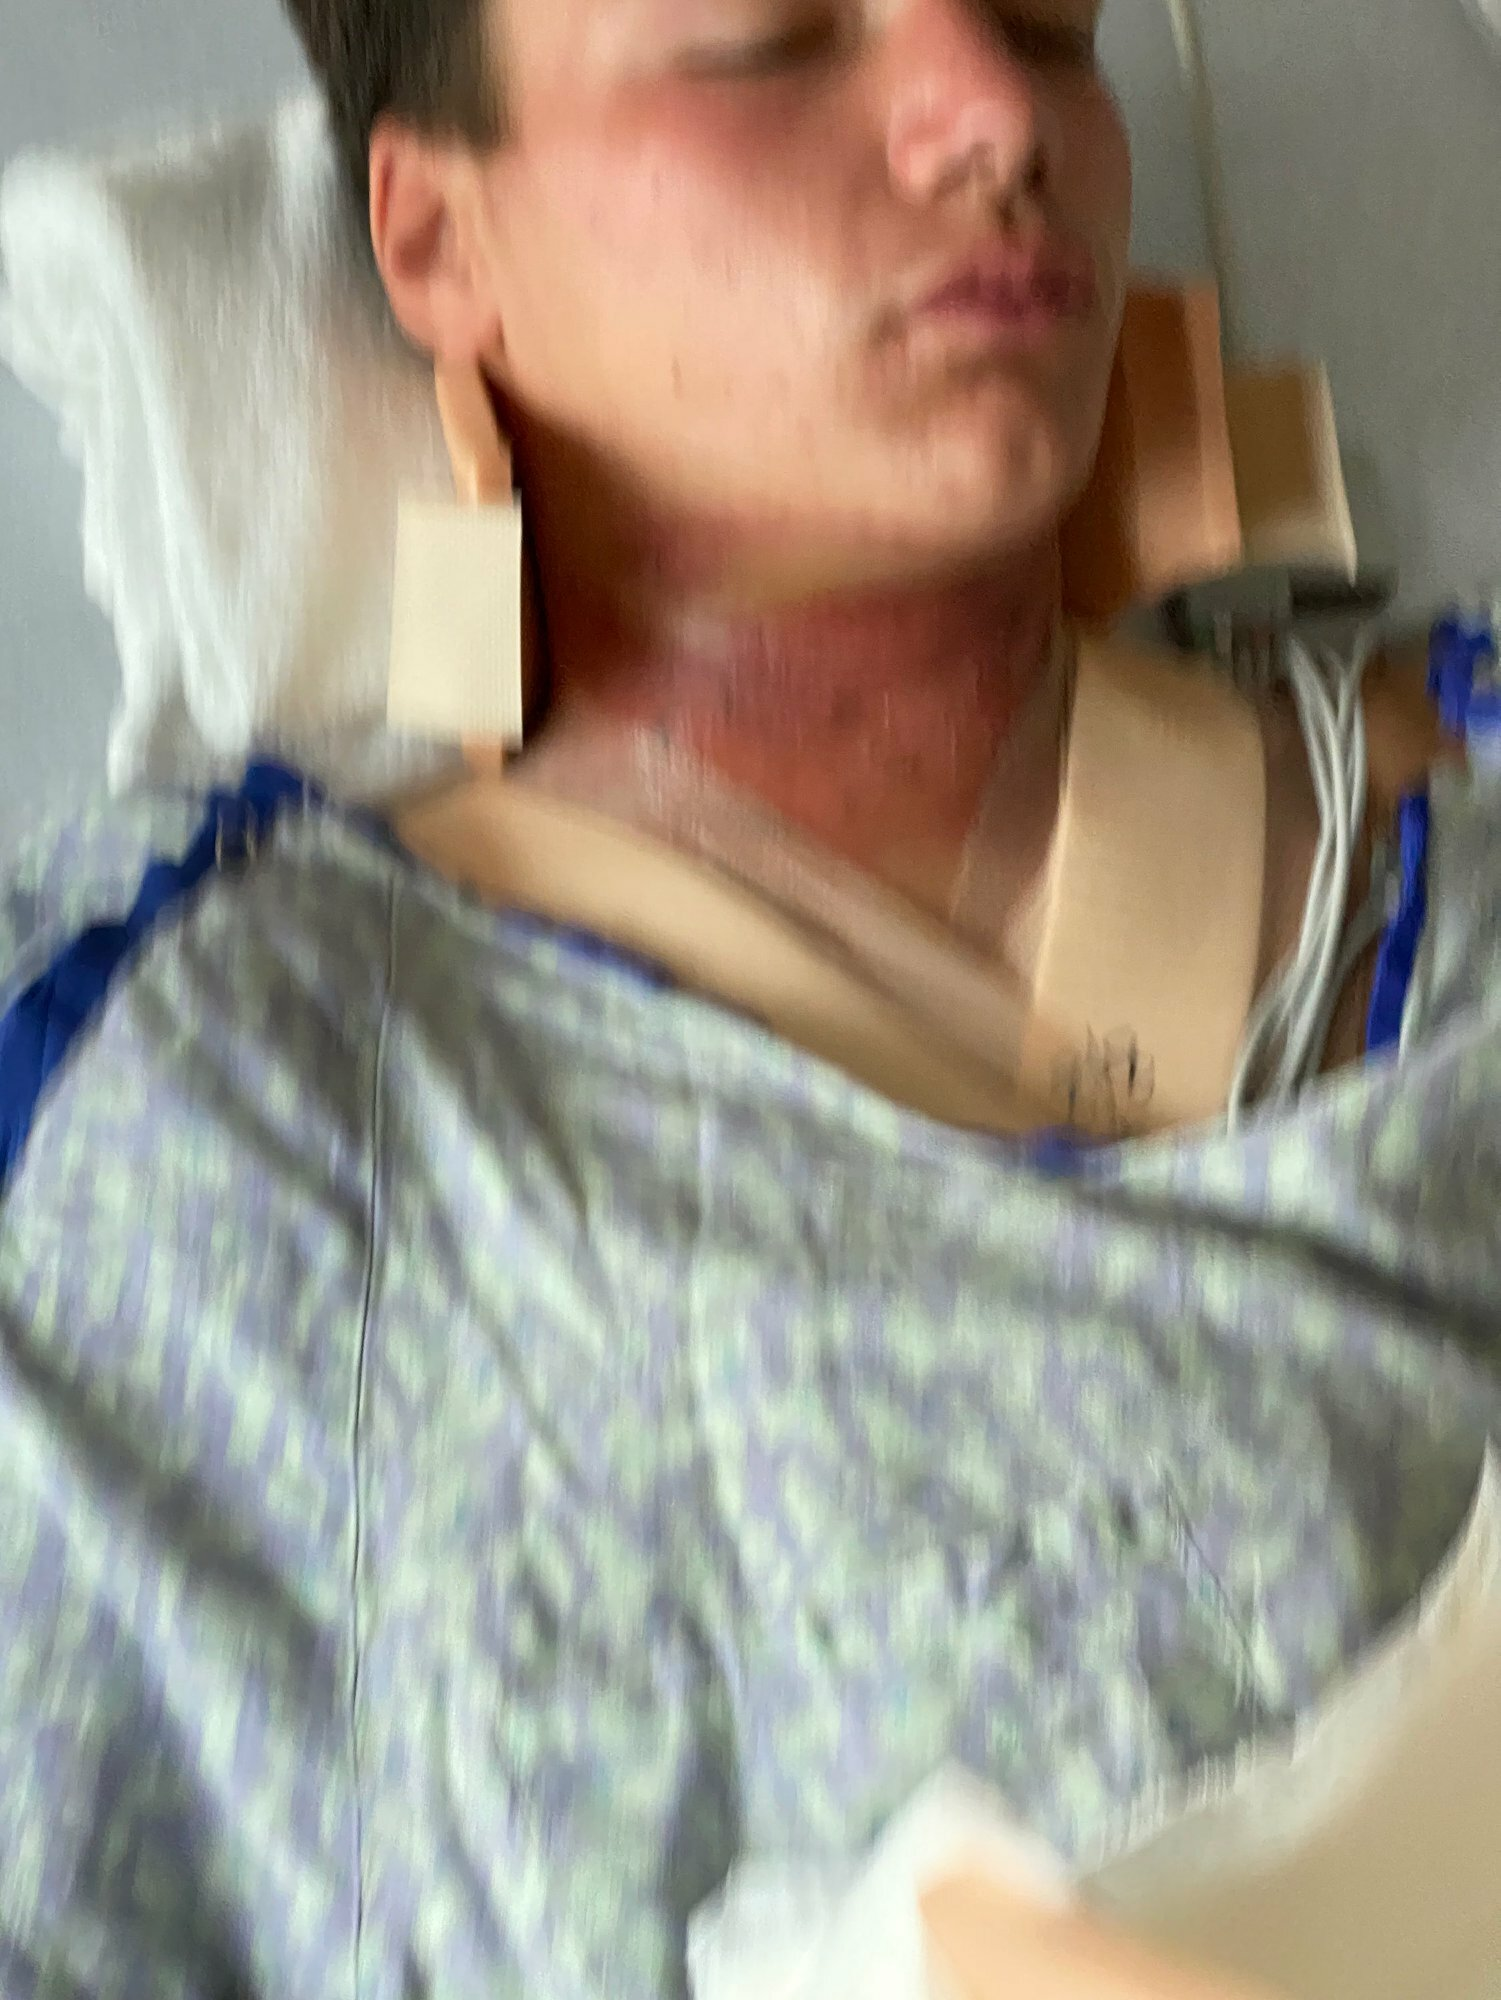 James Edler, 17, spent four days in Stony Brook University Hospital after riding his quad into a rope that had been strung across a Noyac trail on August 6. COURTESY JAMES EDLER